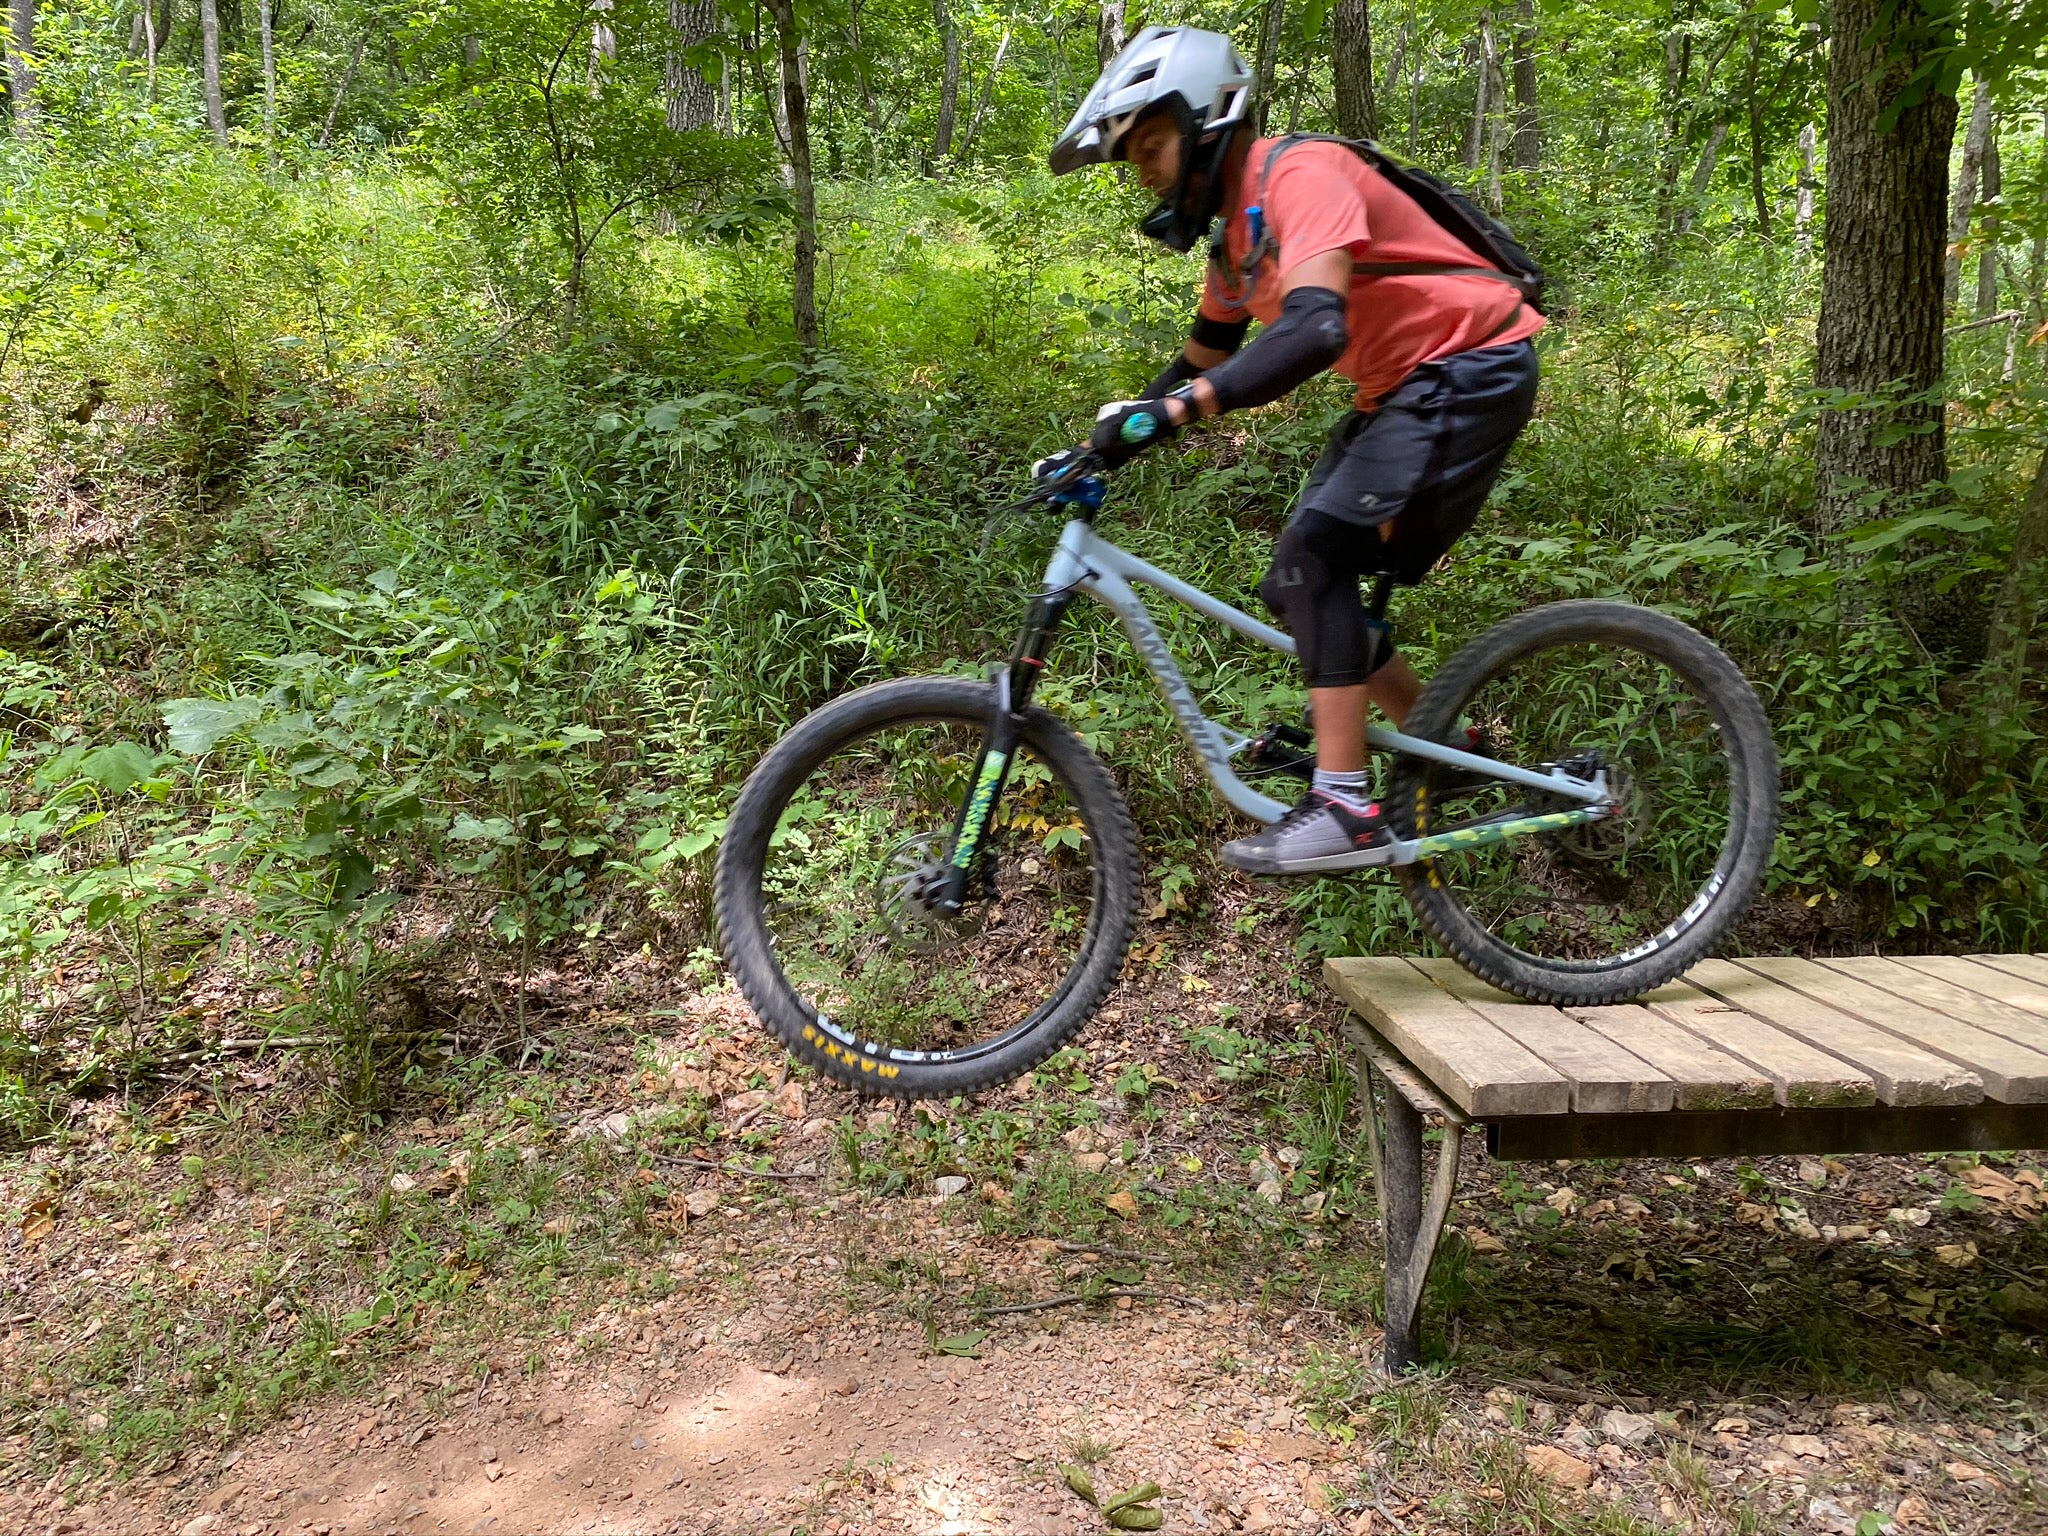 Learn to roll off drops in a Private Mountain Bike Skills Class